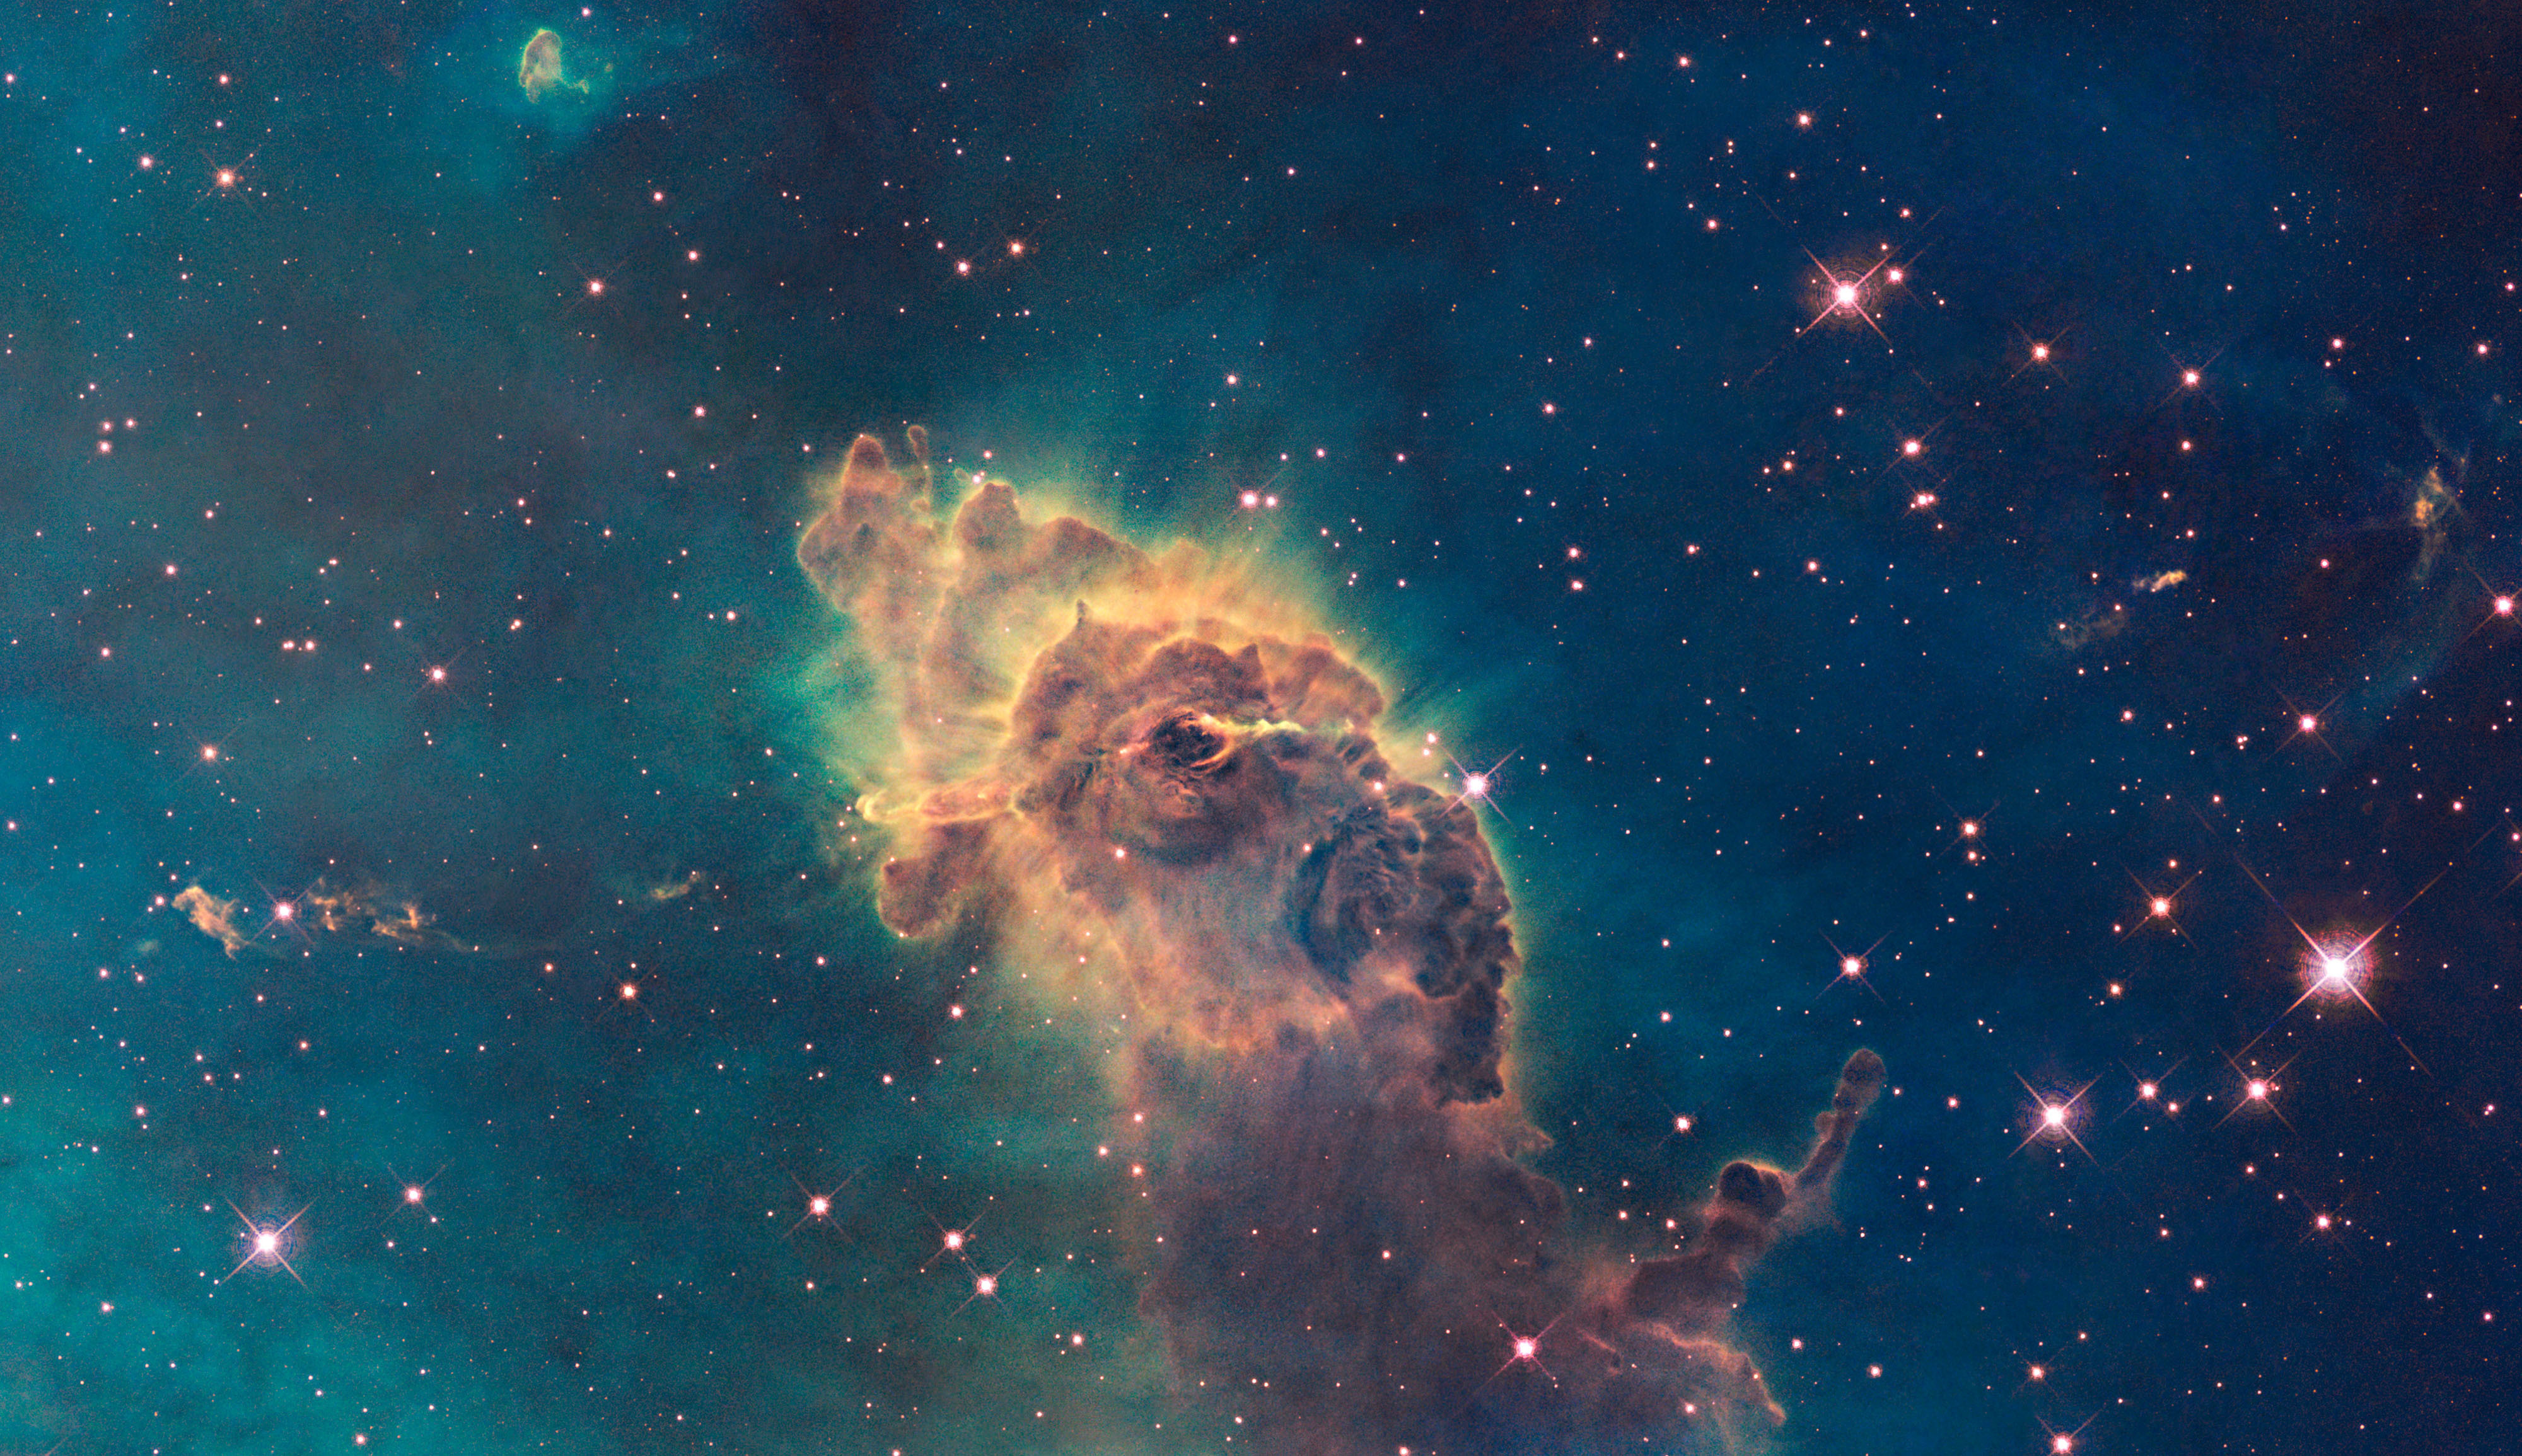 This image made by the NASA/ESA Hubble Space Telescope shows the tip of the three-light-year-long pillar in a stellar nursery called the Carina Nebula, located 7500 light-years away from the Earth.